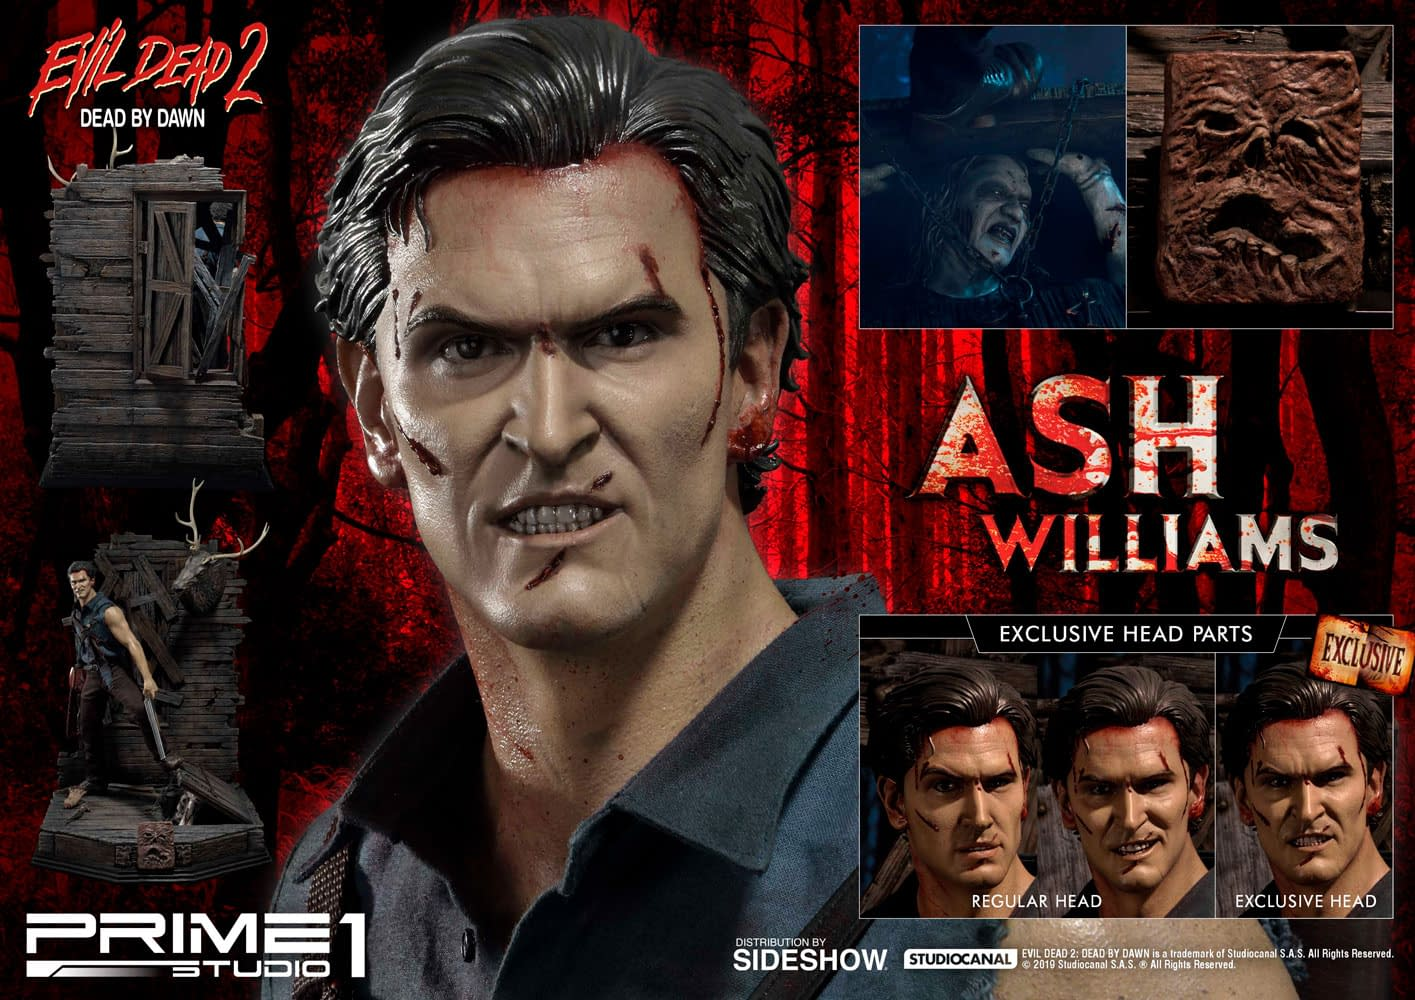 ash-williams_evil-dead-ii_gallery_5e714c409ac53